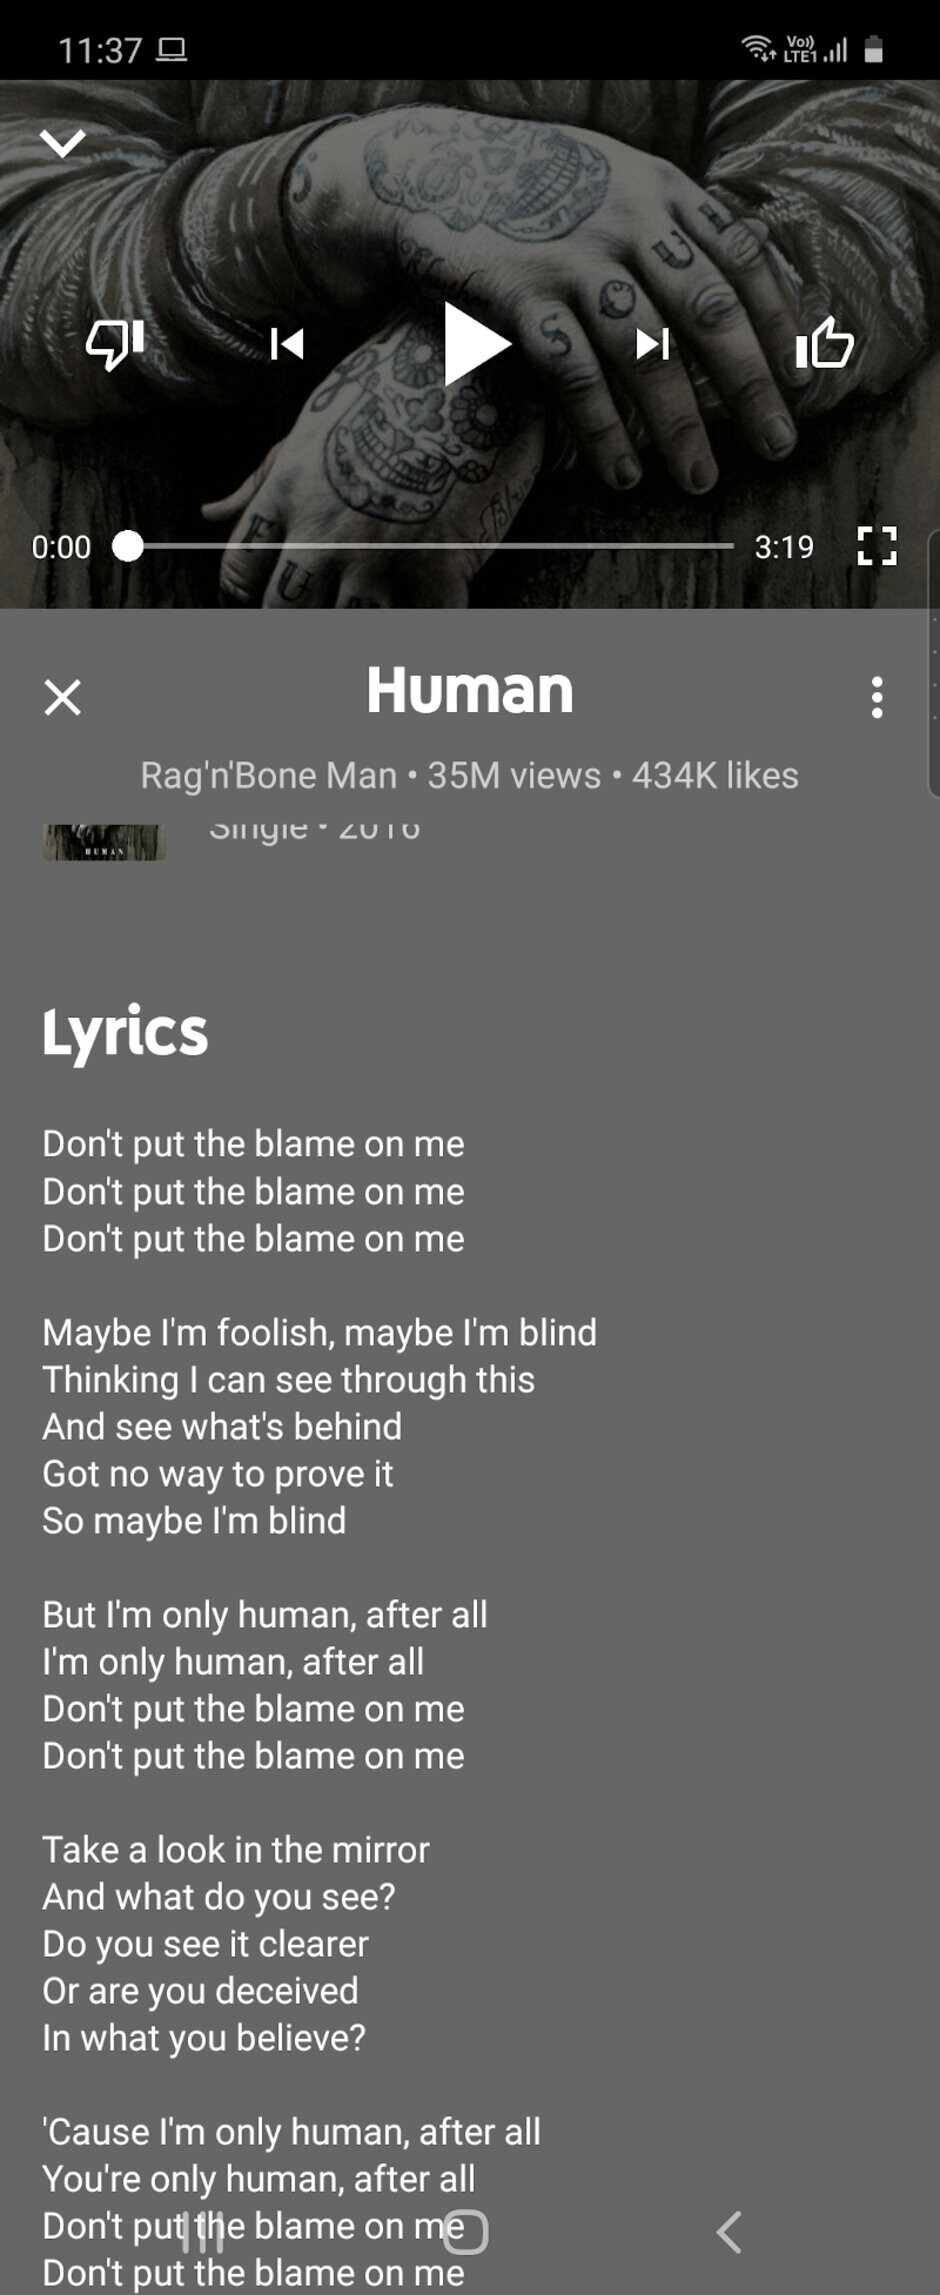 Lyrics on screen - Everyone can now sing along to YouTube Music with in-app lyrics, not just Android users